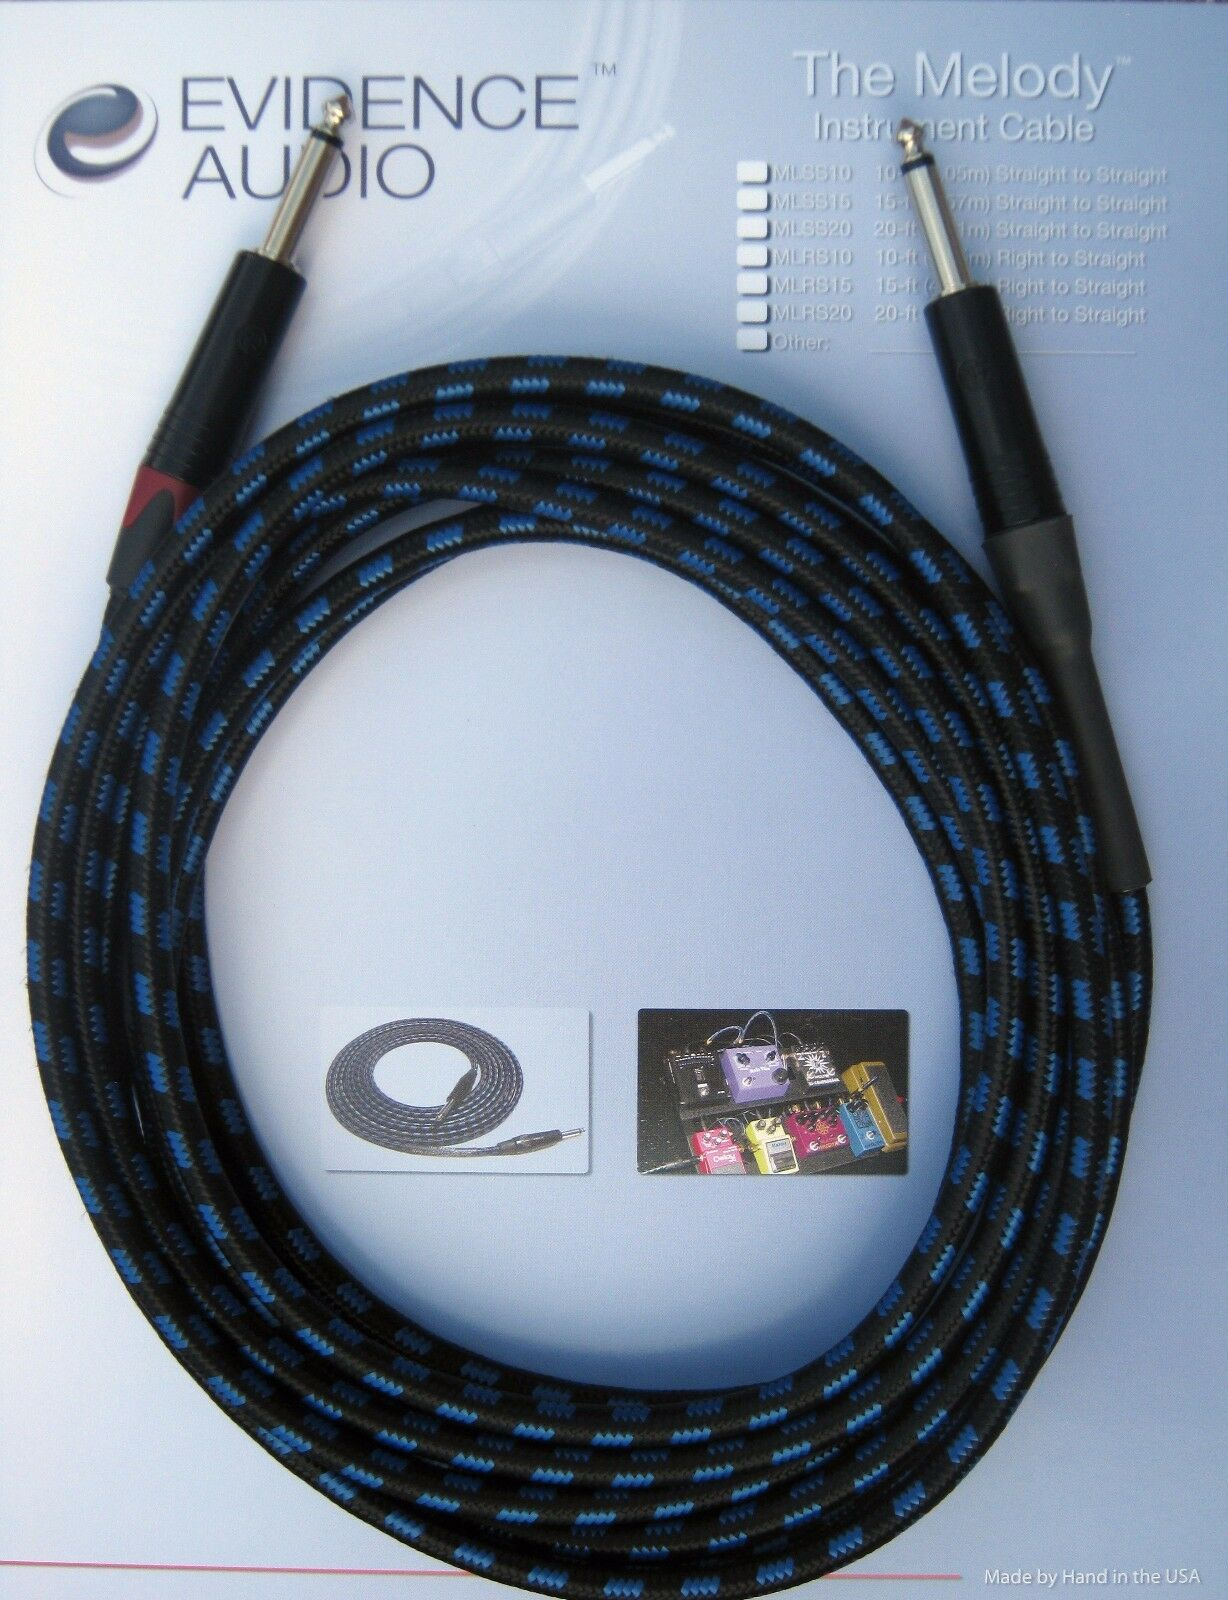 Evidence Audio Melody Cable 15 Pies Pies Pies S s R s S r o R r dabd1e